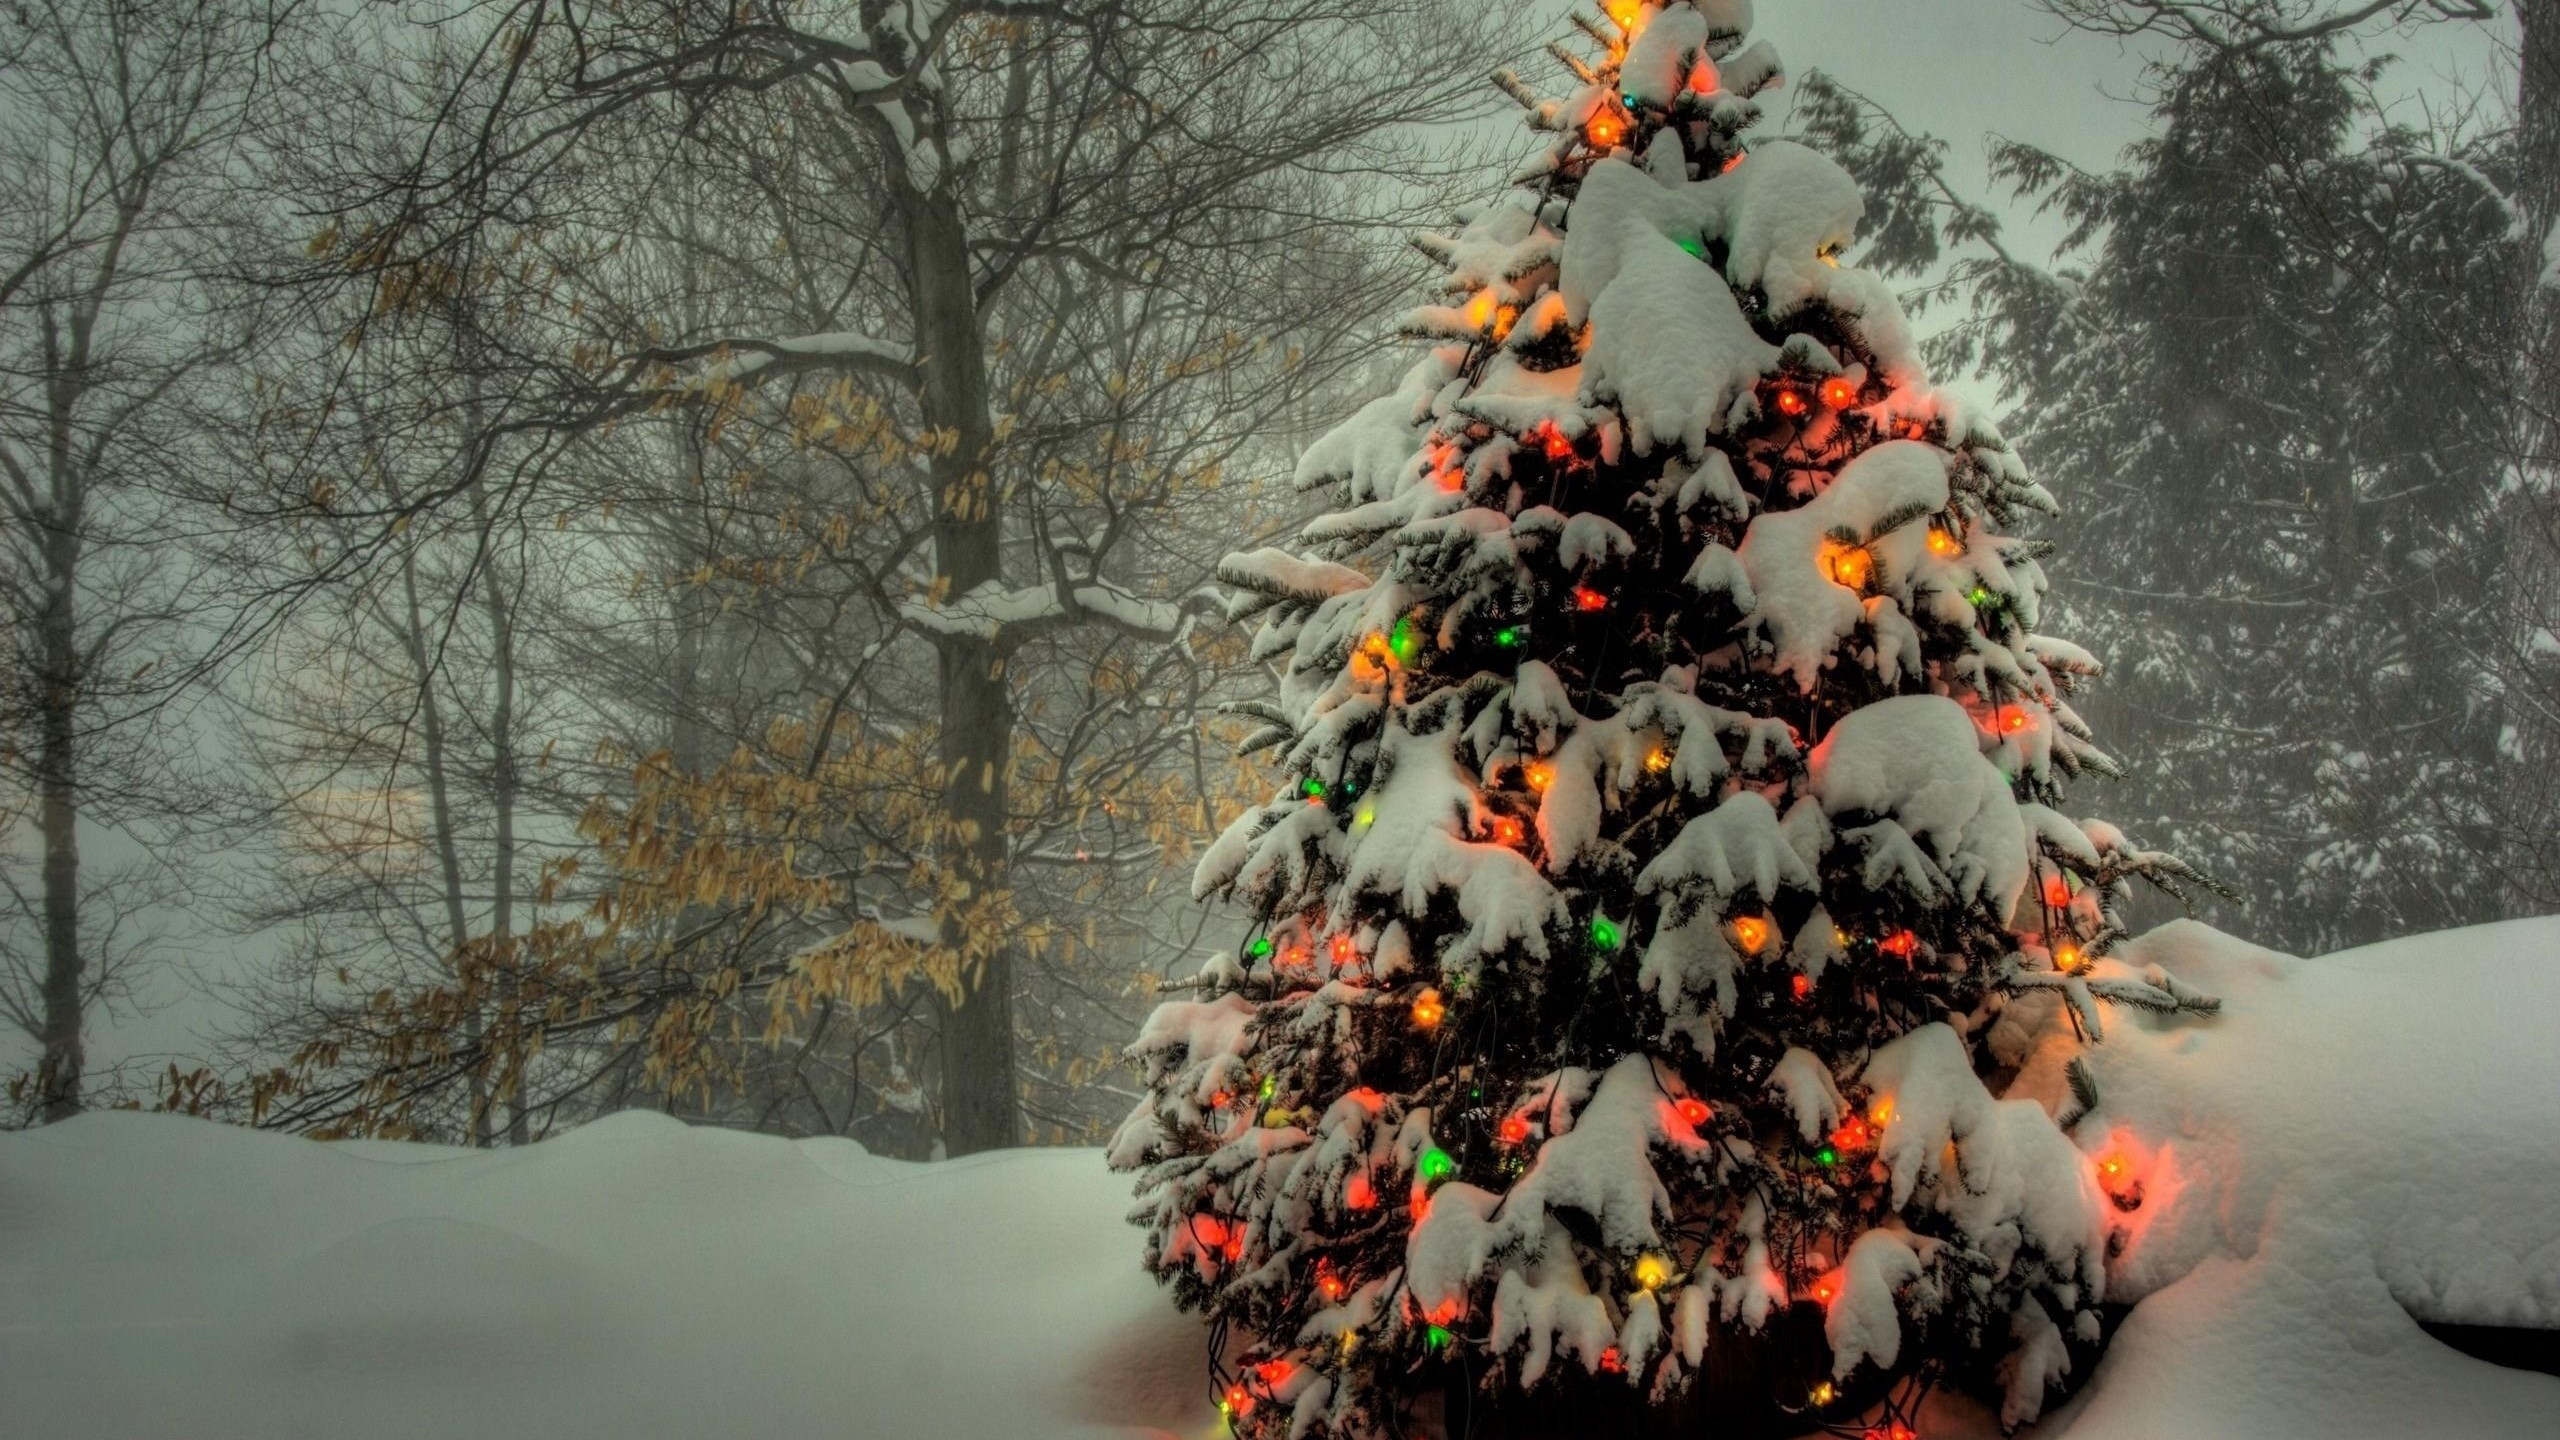 Res: 2560x1440,  Wallpaper tree, garland, new year, christmas, trees, snow, winter